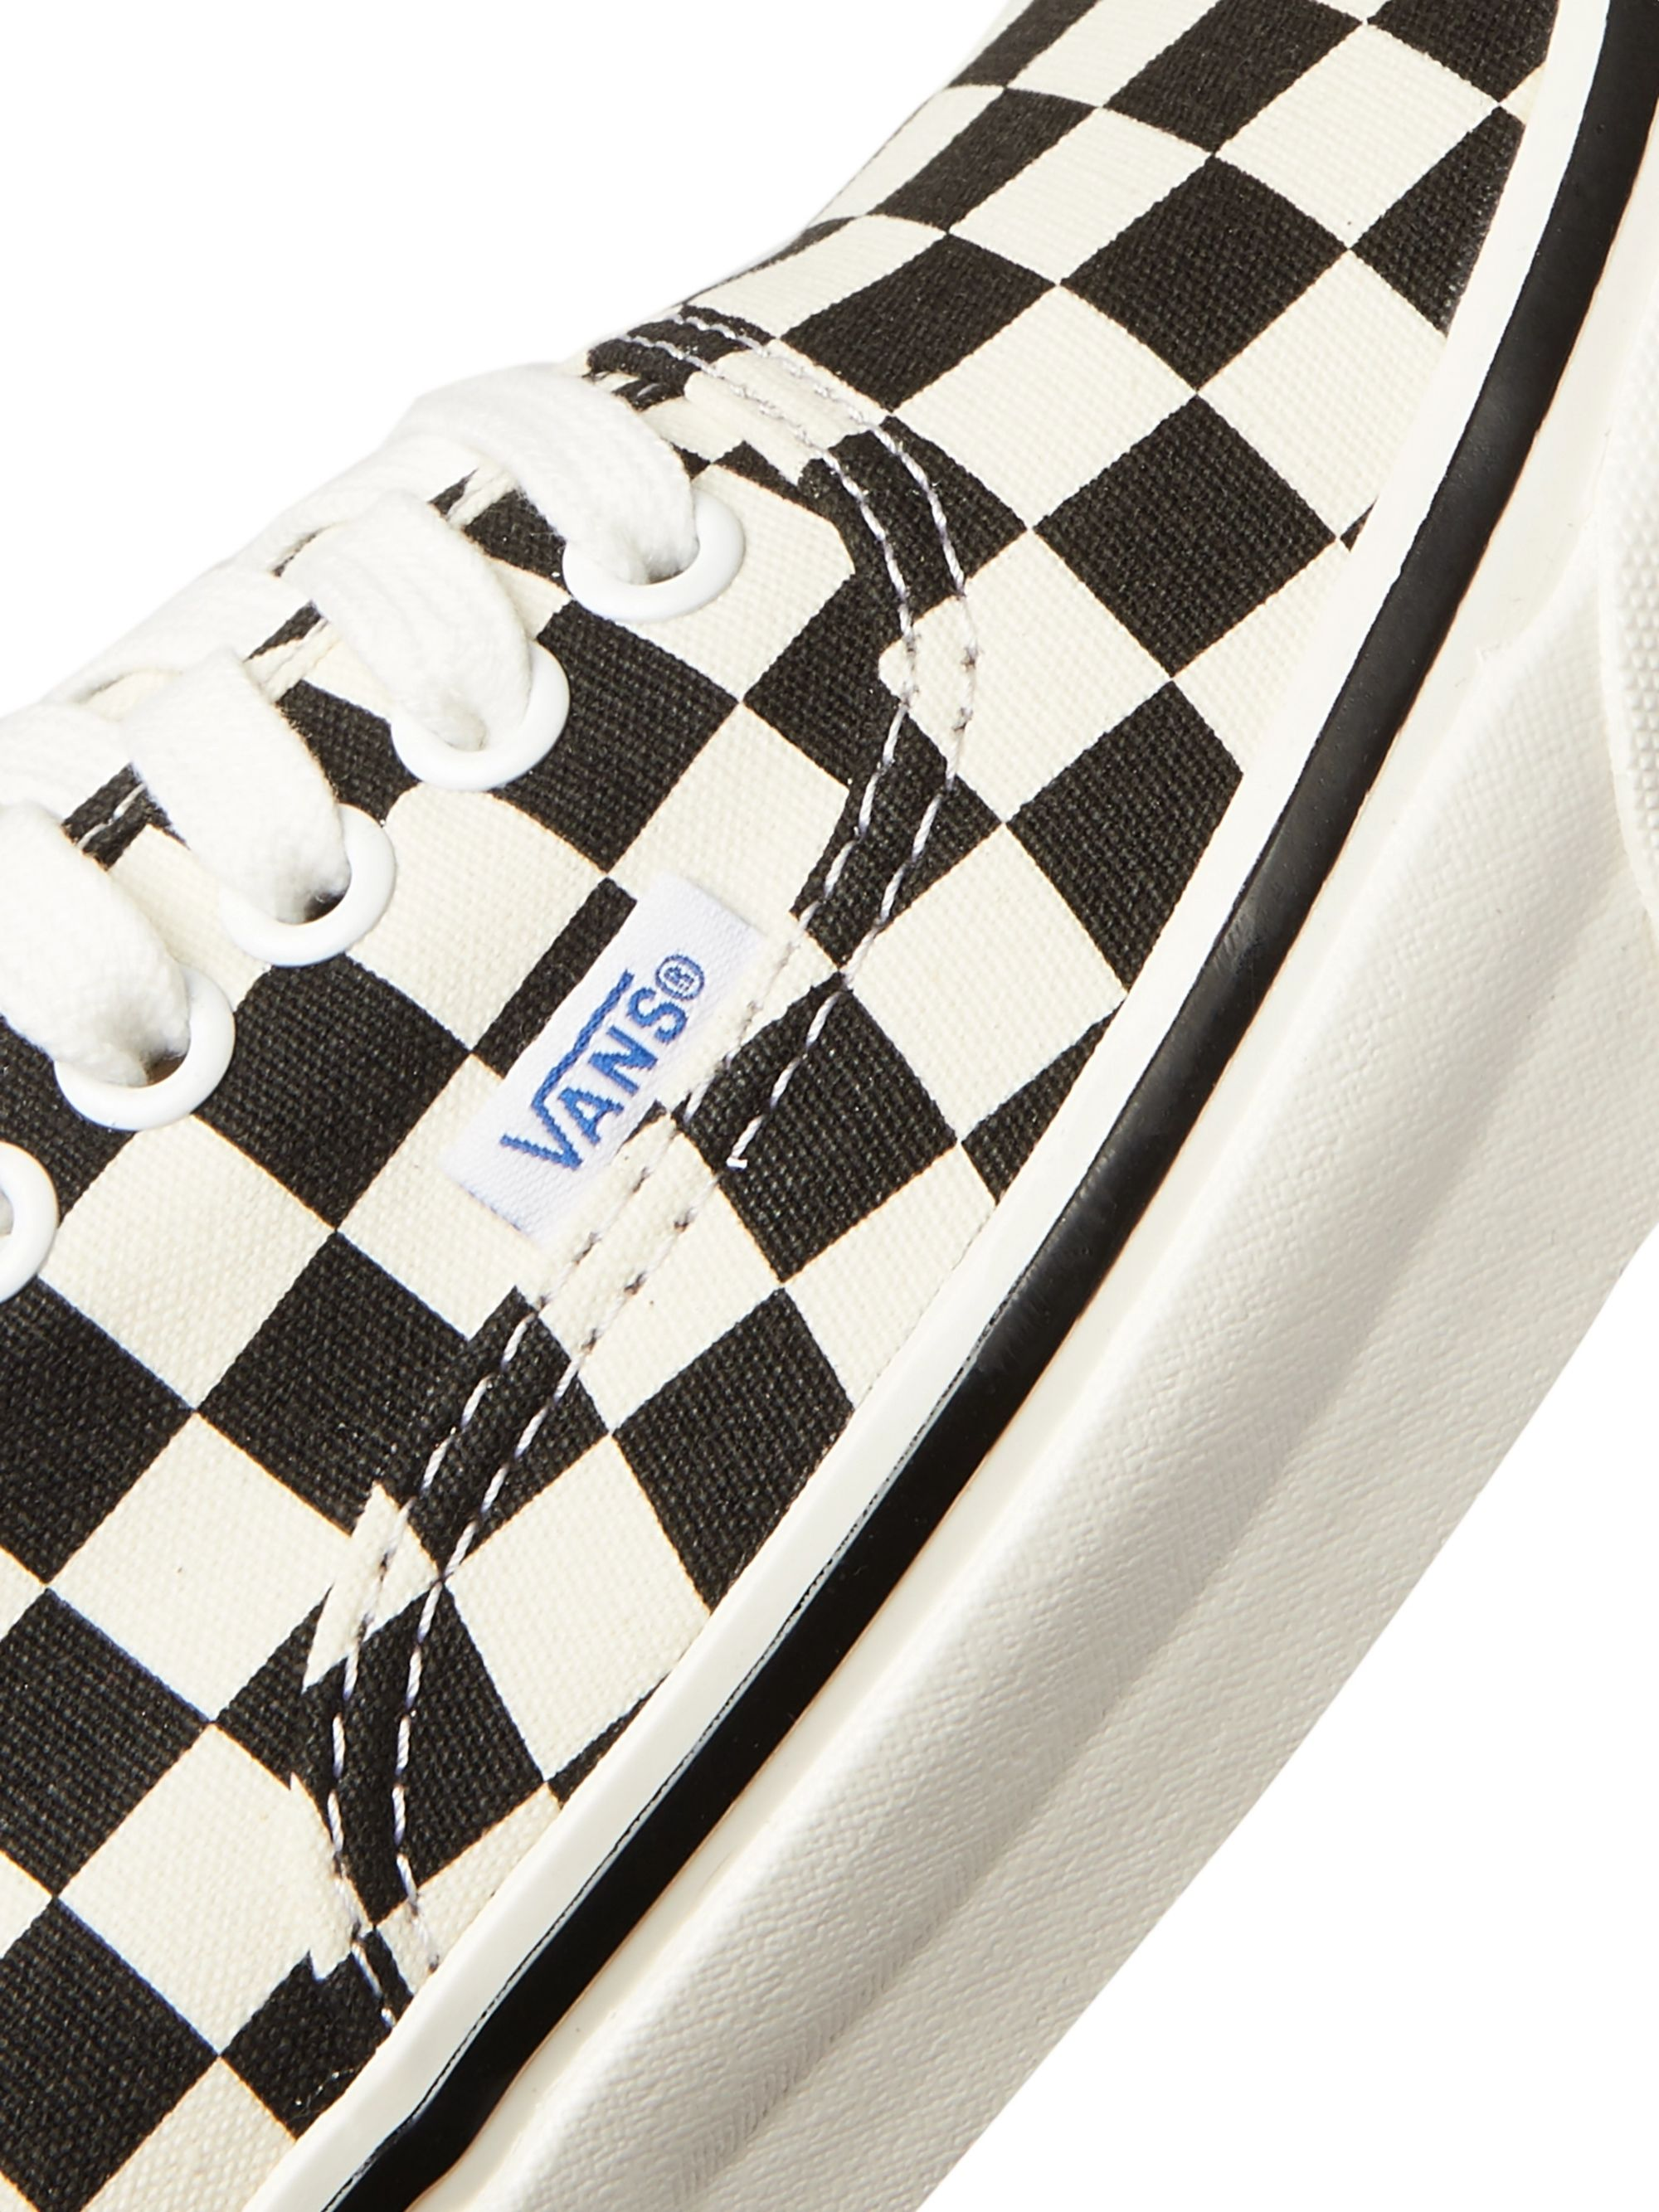 Vans Anaheim Authentic 44 DX Checkerboard Canvas Sneakers